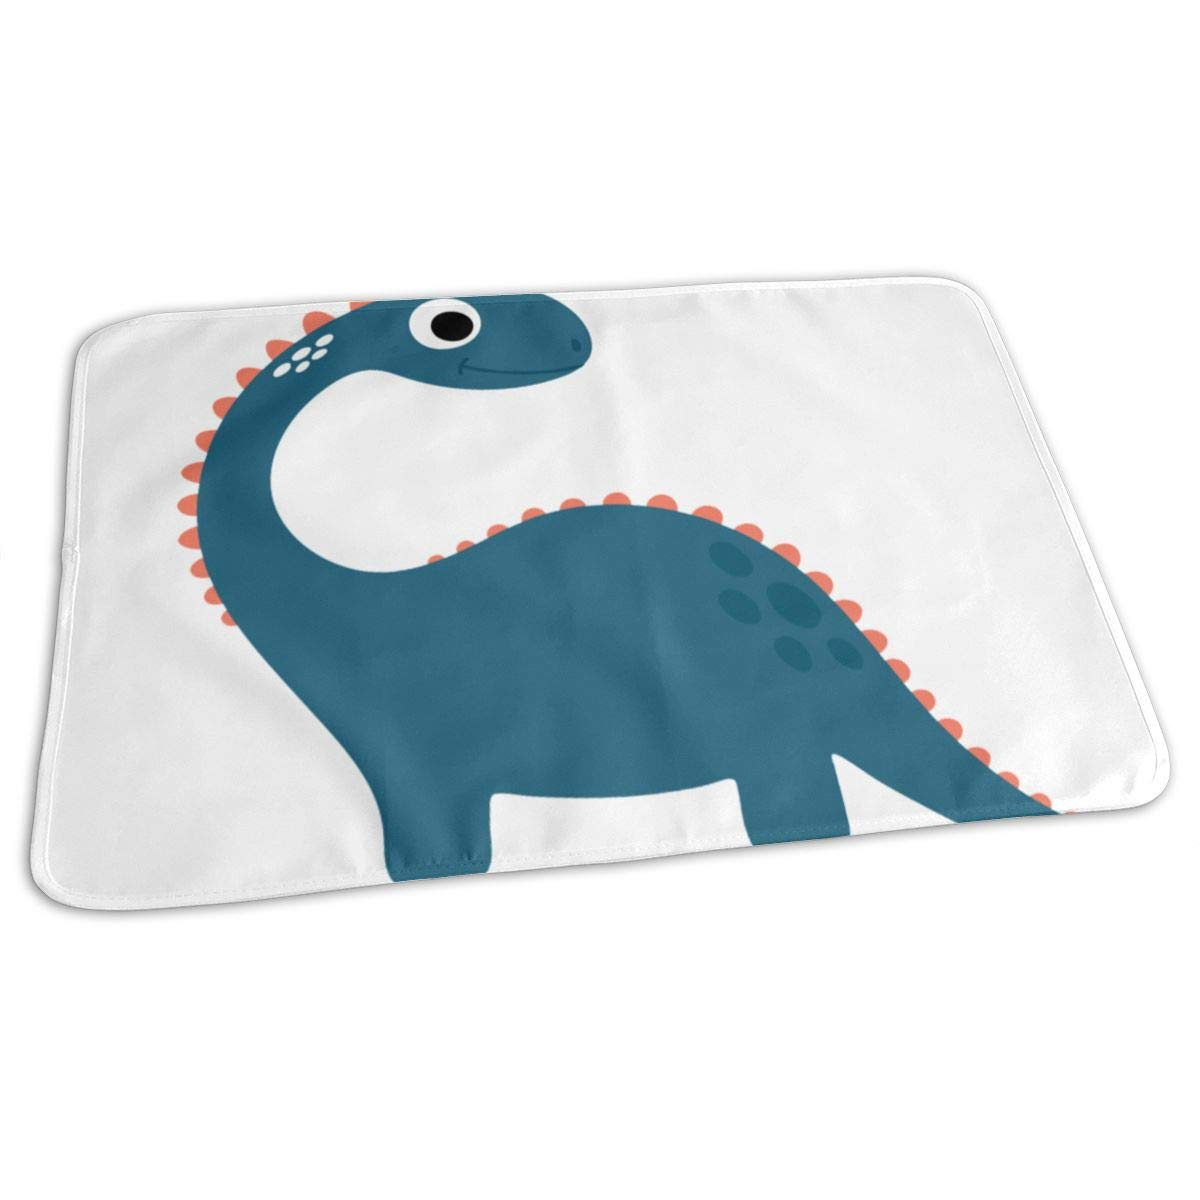 Osvbs Lovely Baby Reusable Waterproof Portable Cartoon Dark Blue Banded Dragon Changing Pad Home Travel 27.5''x19.7'' by Osvbs